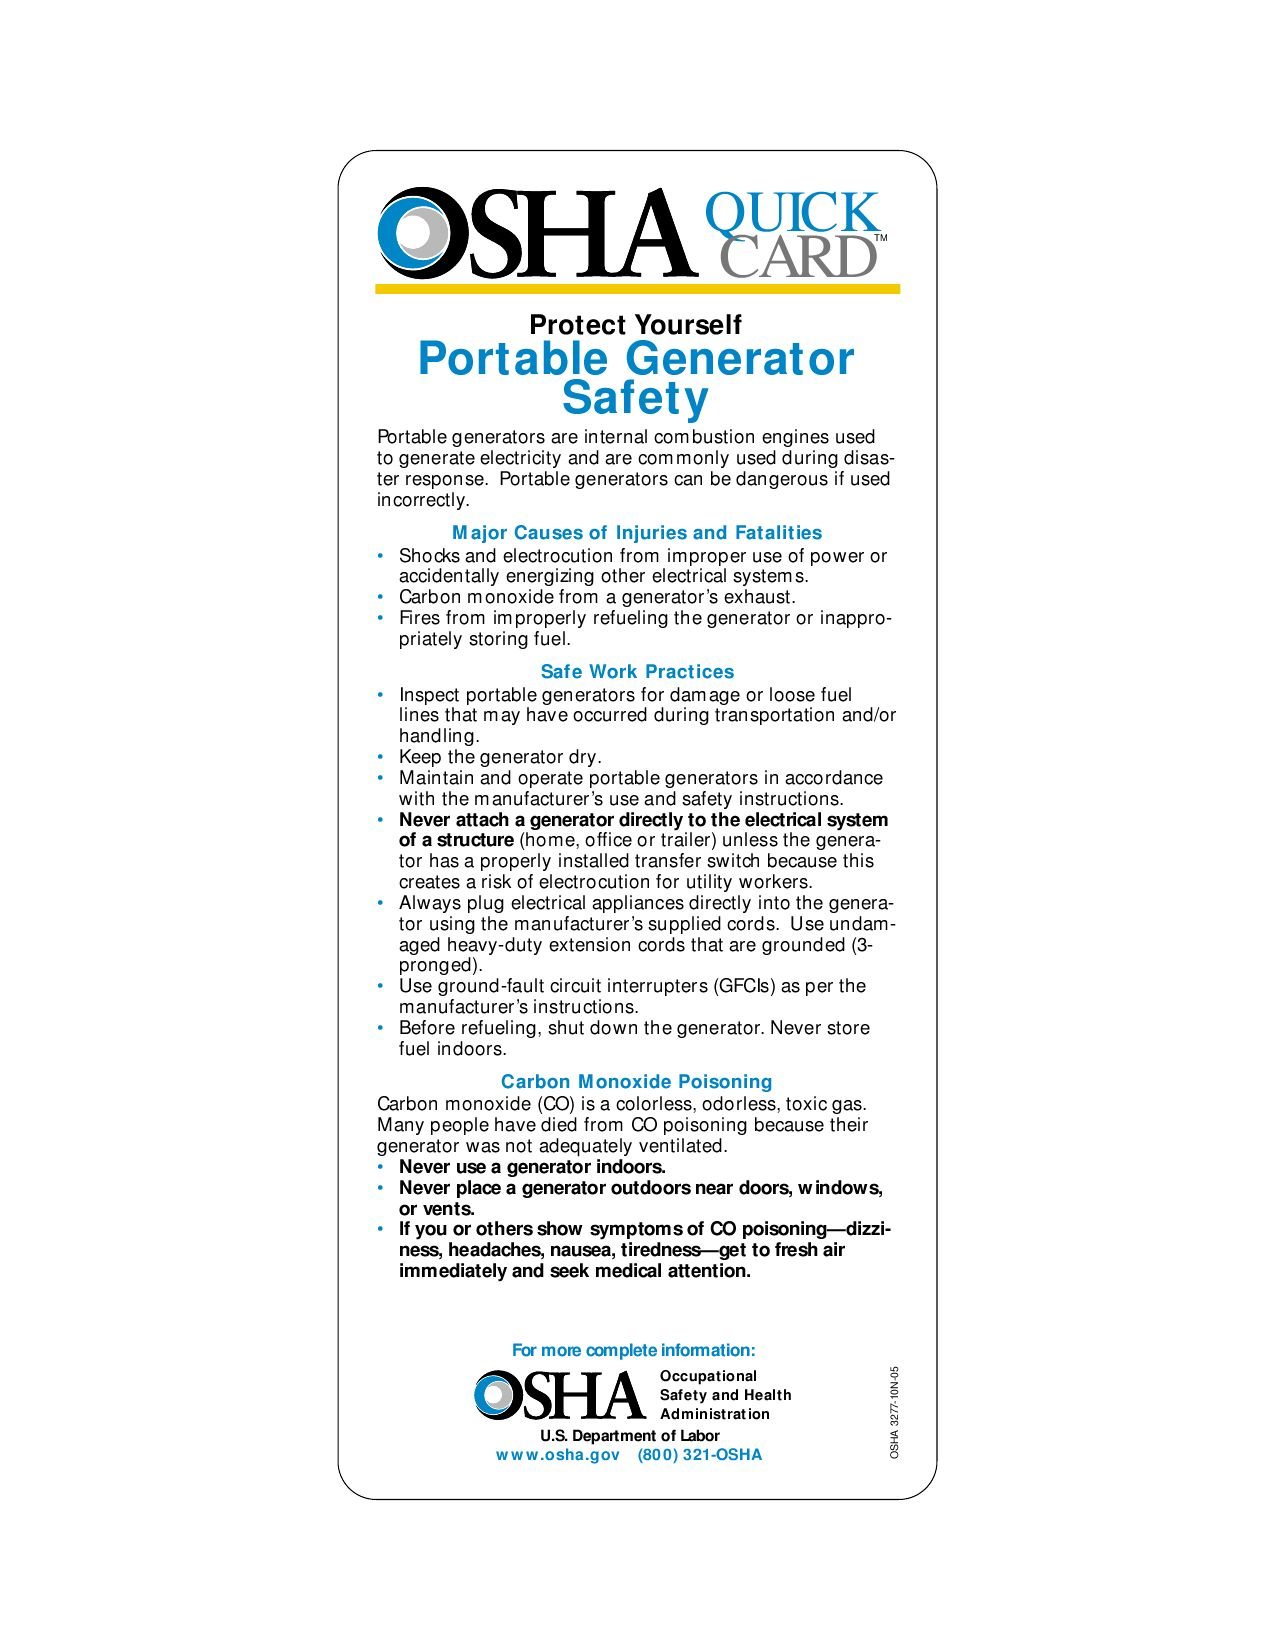 portable generator safety quickcard u2122 osha 3277